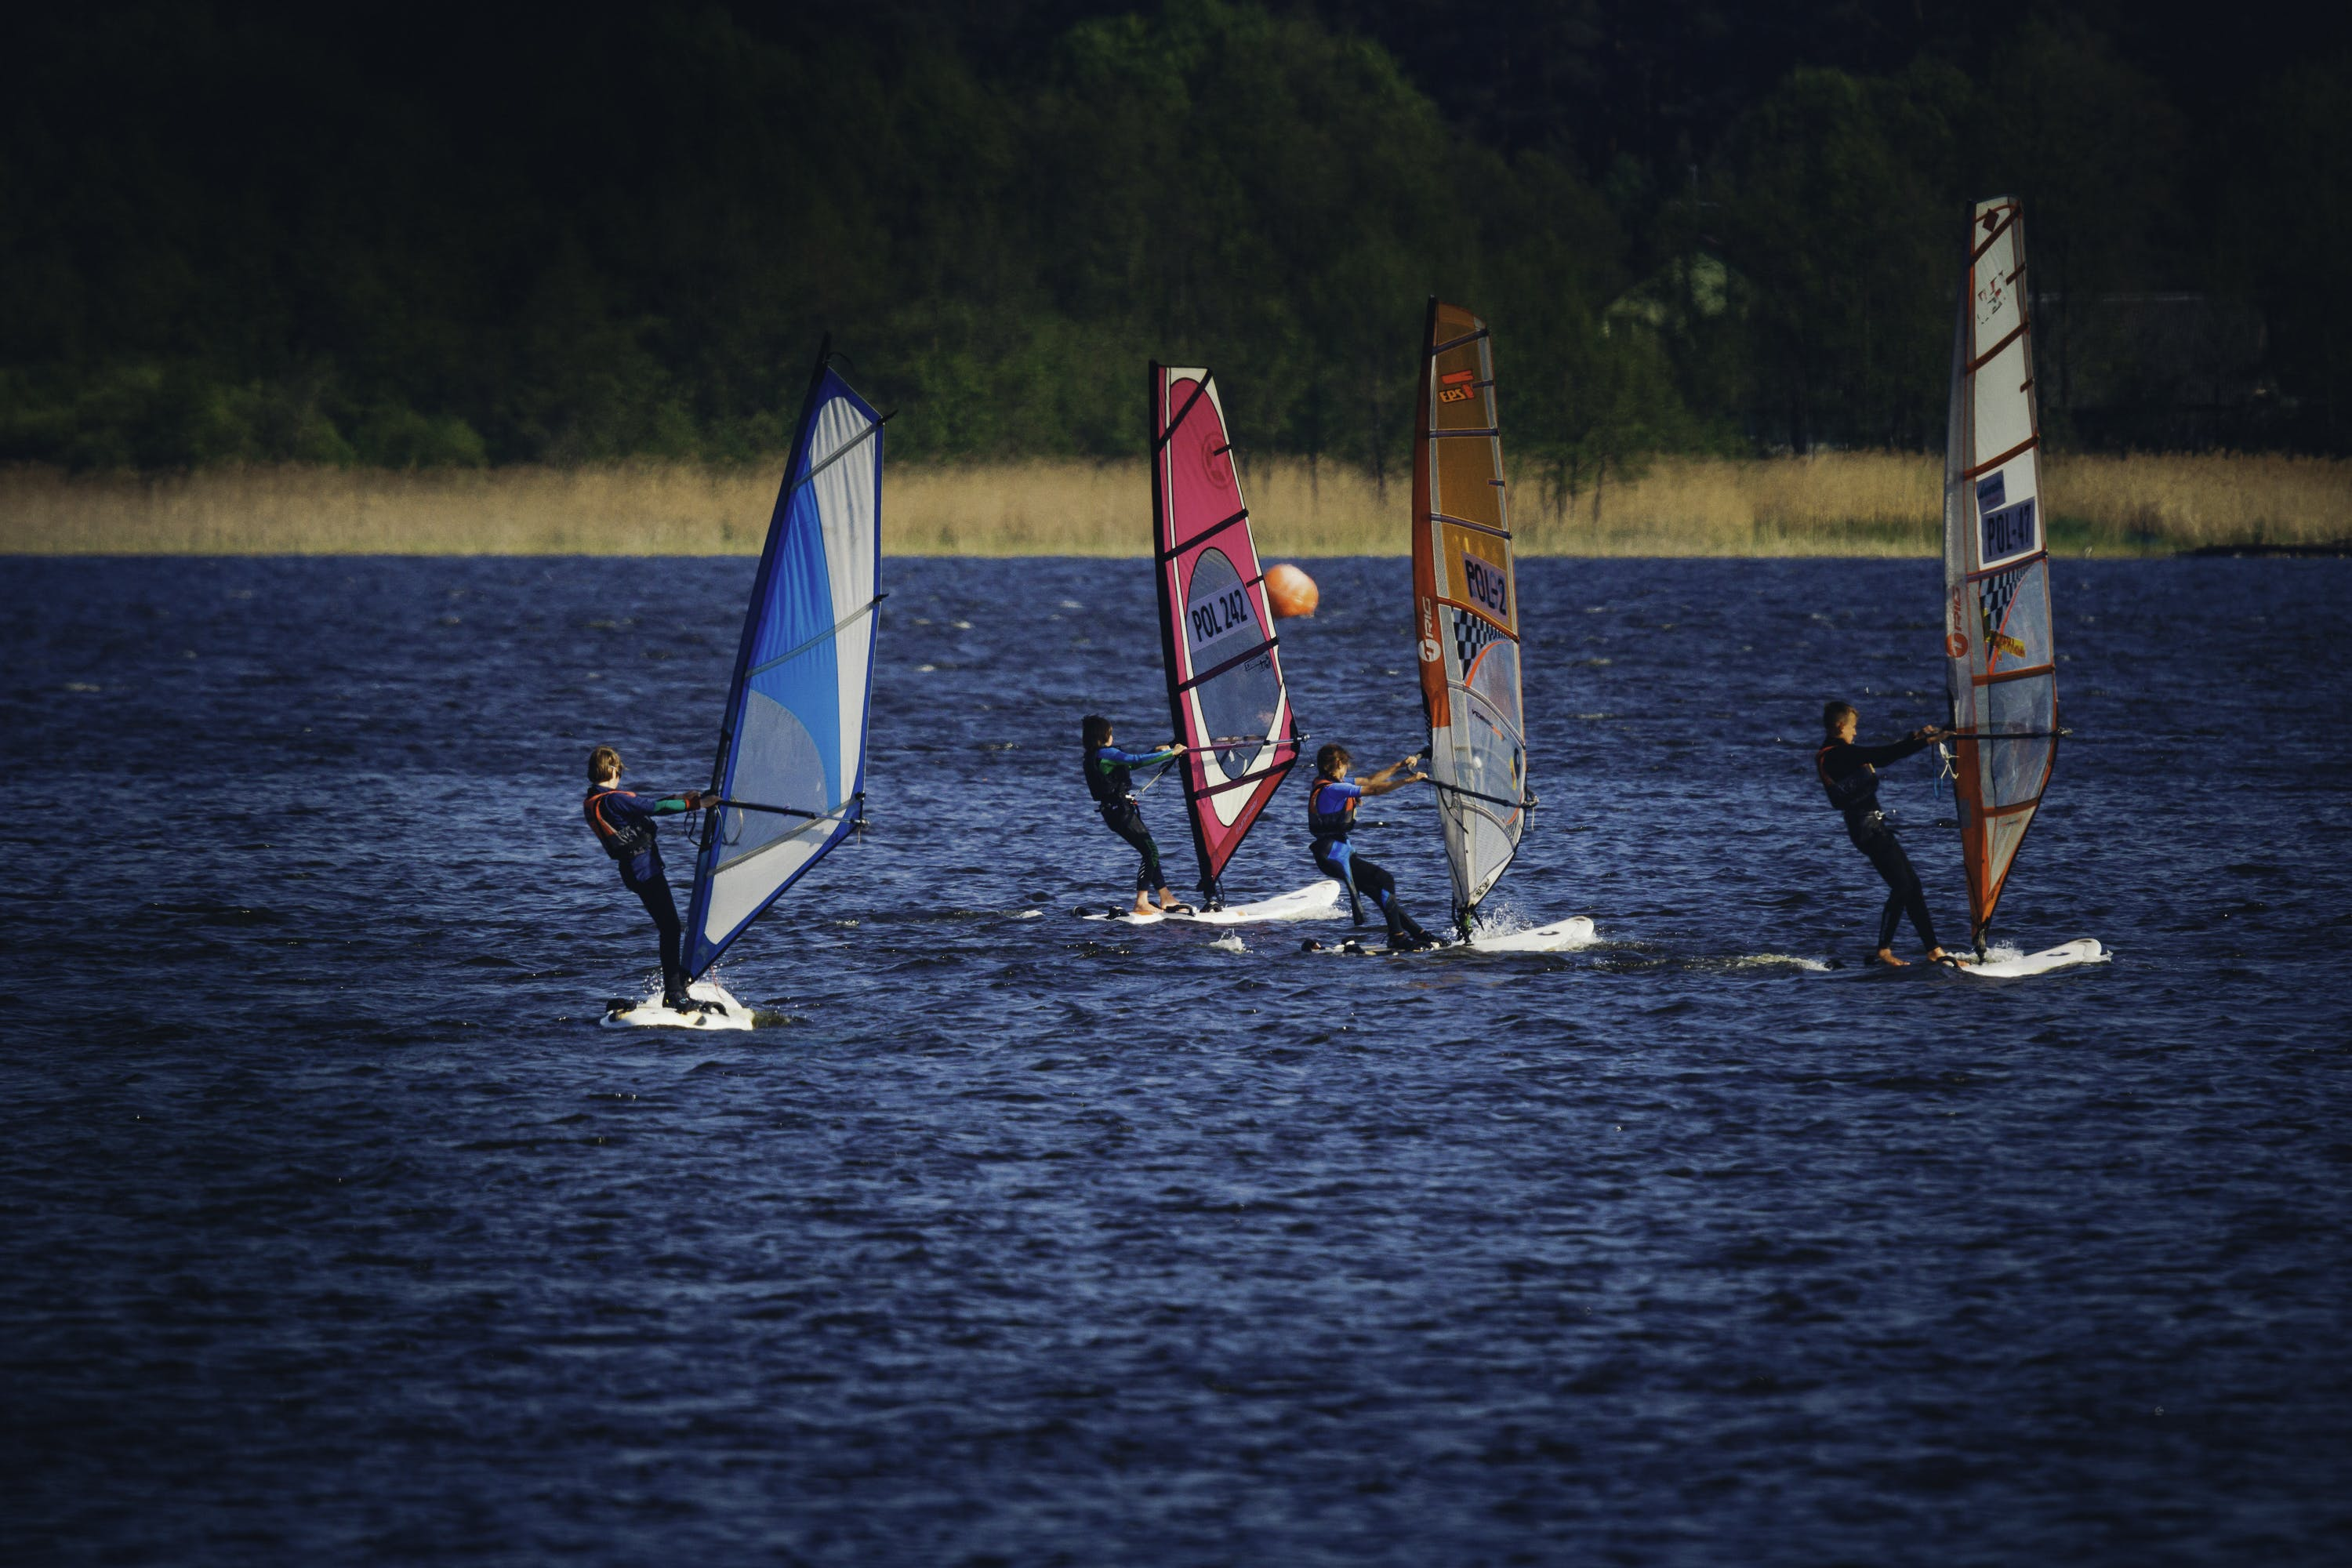 Four Person Riding Wind Sailboard on Body of Water